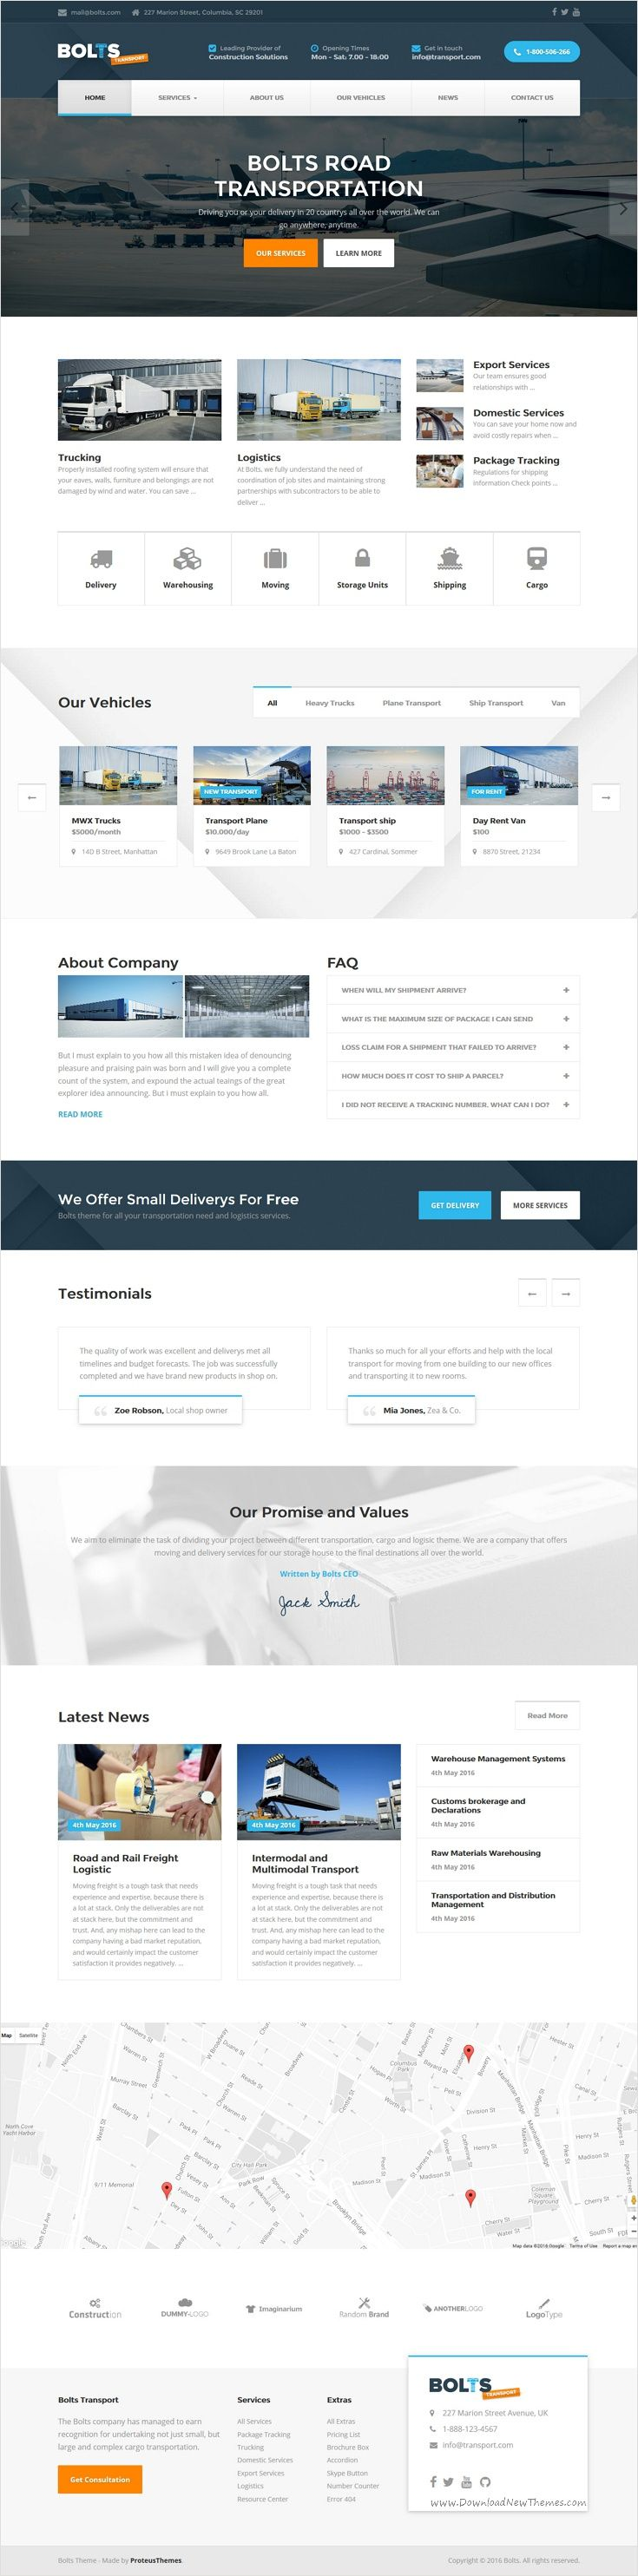 Bolts transport is a perfect responsive #HTML theme for #Transportation, freight, trucking, #logistics businesses, shipping or package delivery company website download now➩ https://themeforest.net/item/bolts-transport-transportfreight-business-template/18312156?ref=Datasata